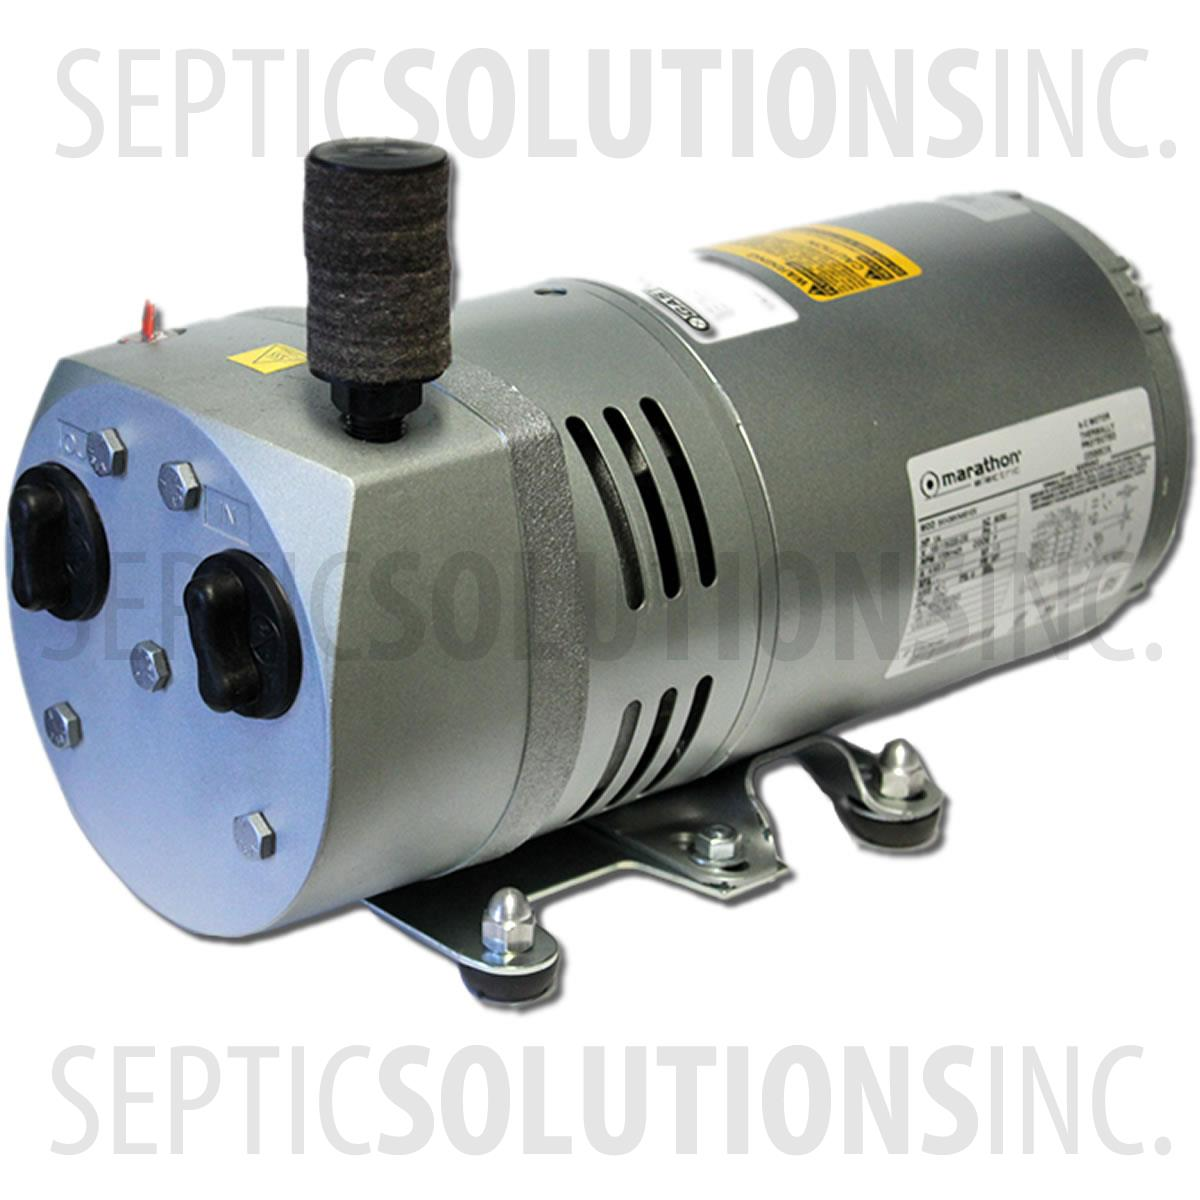 hight resolution of photos of gast air motor parts